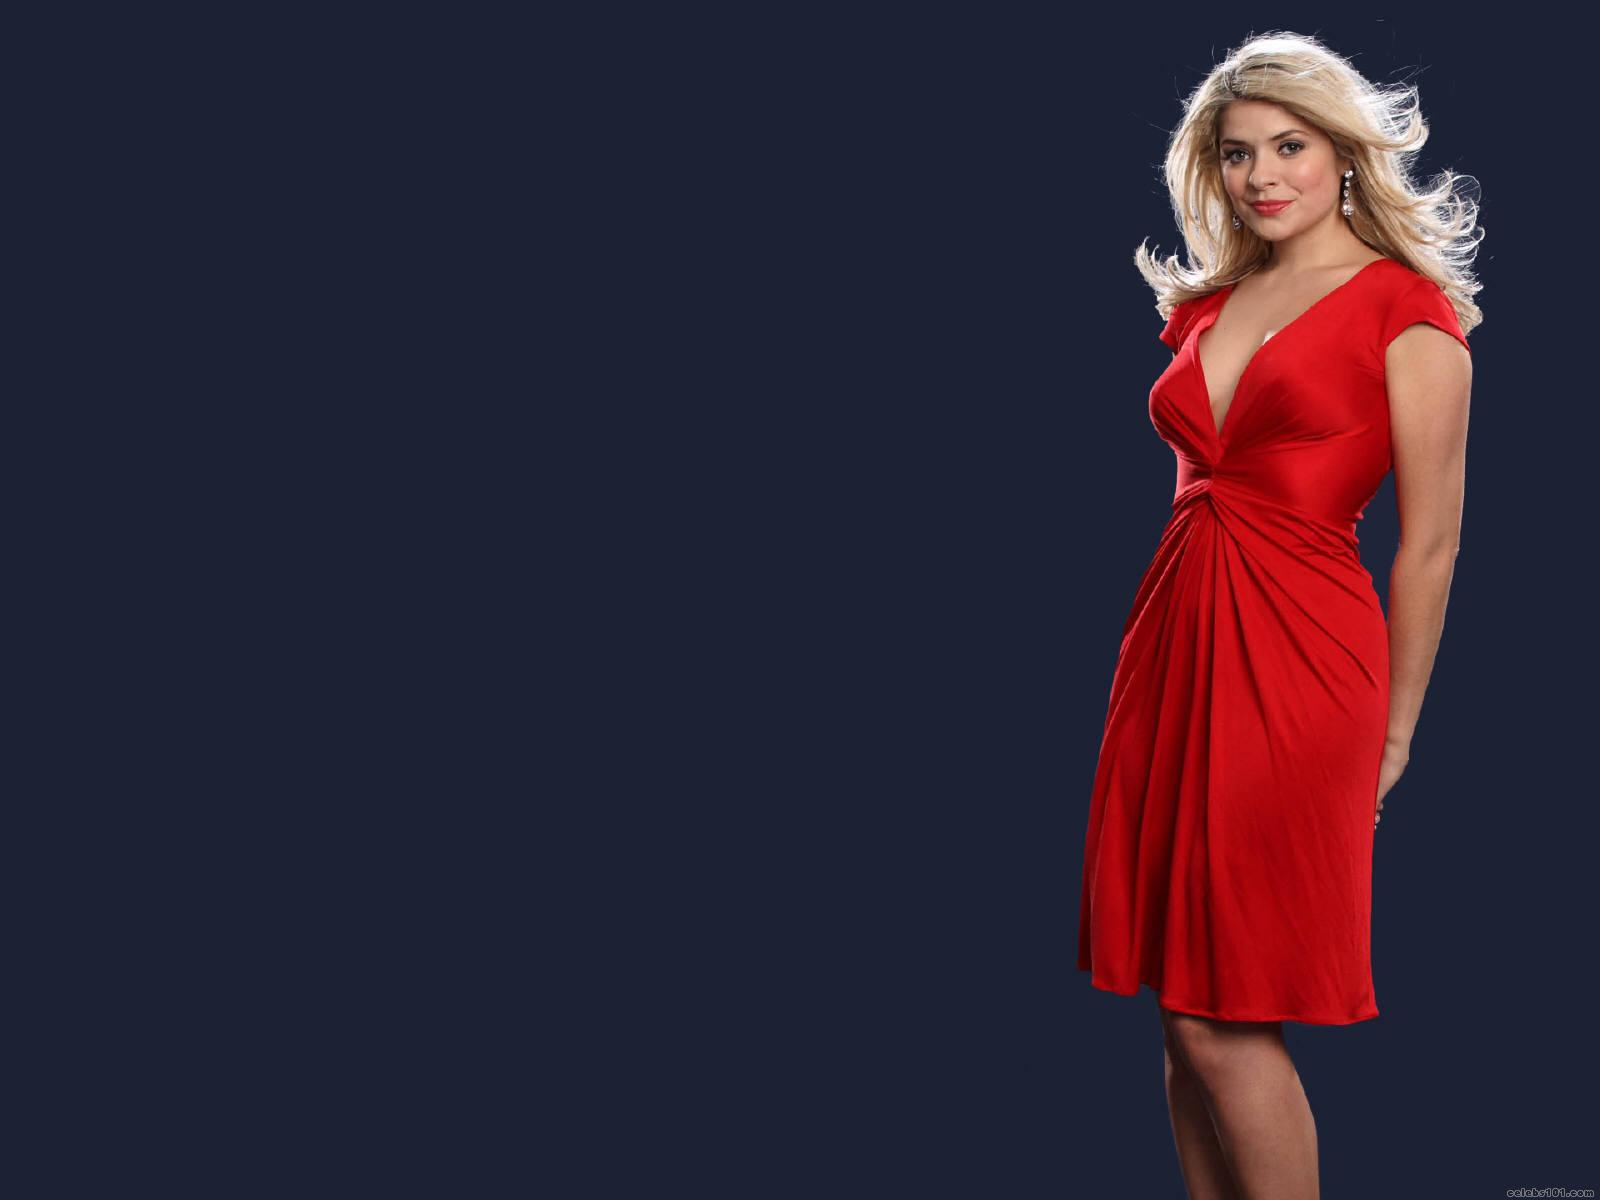 1600x1200 - Holly Willoughby Wallpapers 9